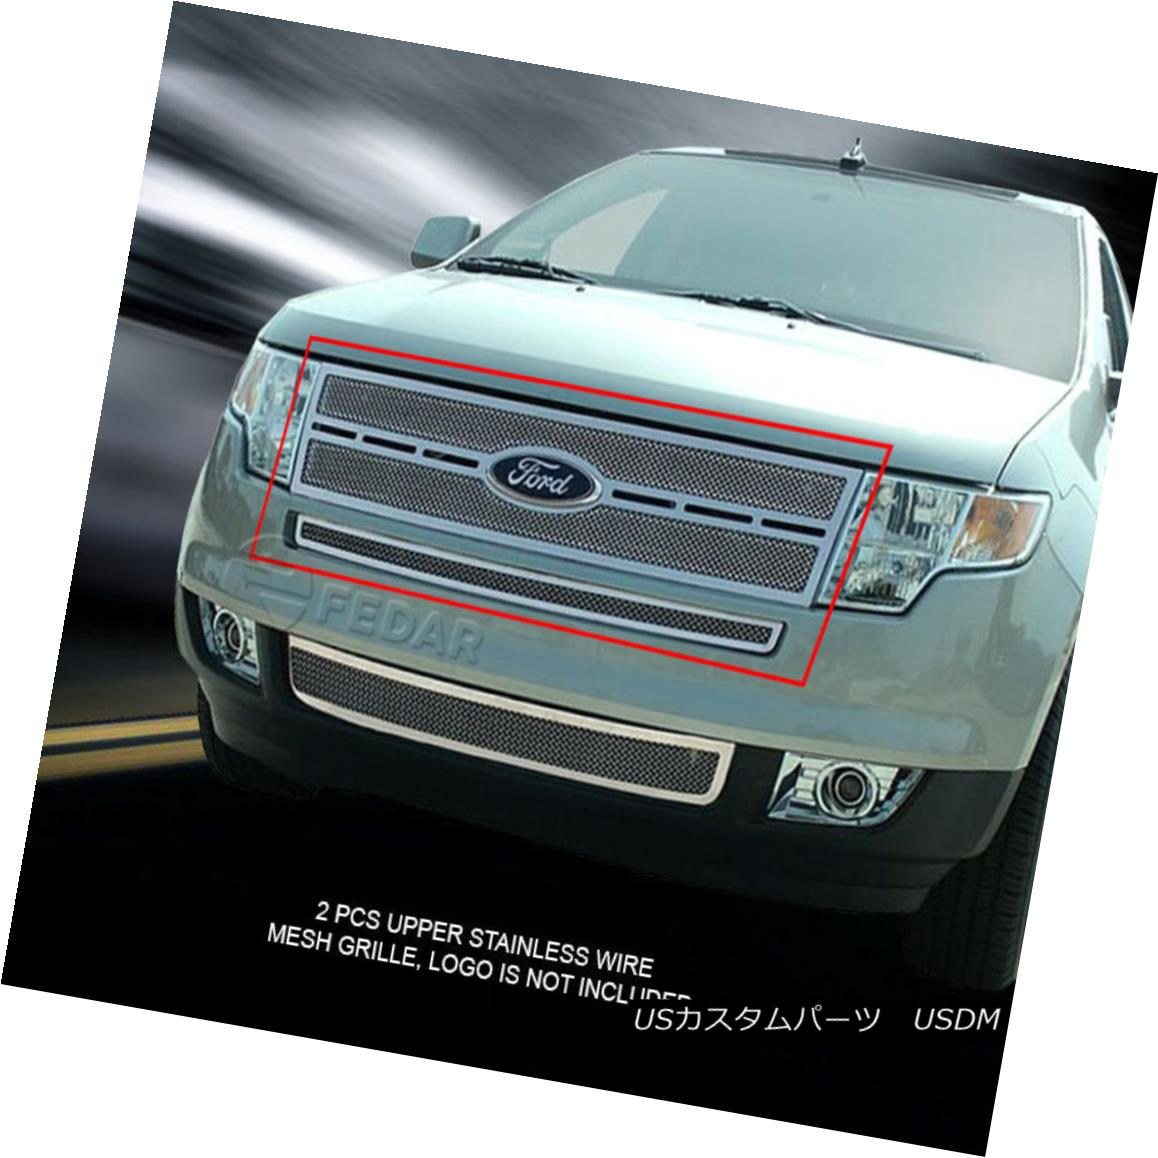 グリル Fedar Fits 2007-2010 Ford Edge Polished Replacement Formed Mesh Grille Insert Fedarは2007?2010年のFord Edge研磨済み交換メッシュグリルインサートを採用